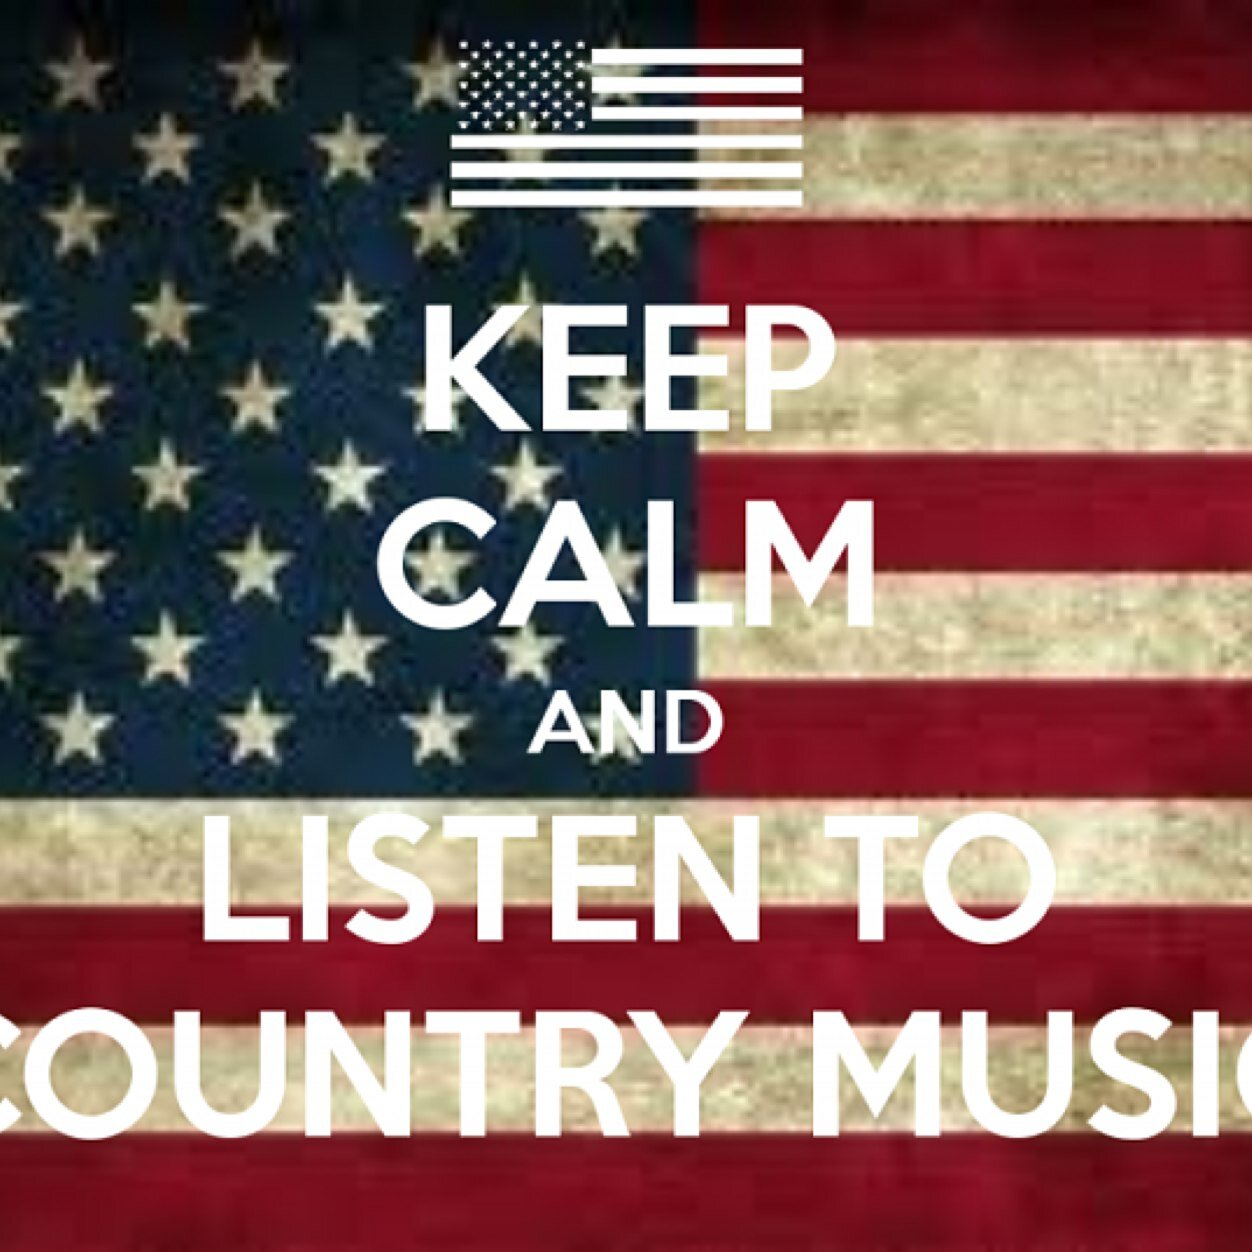 Quotes Music Country Music Quotes Music__Count  Twitter